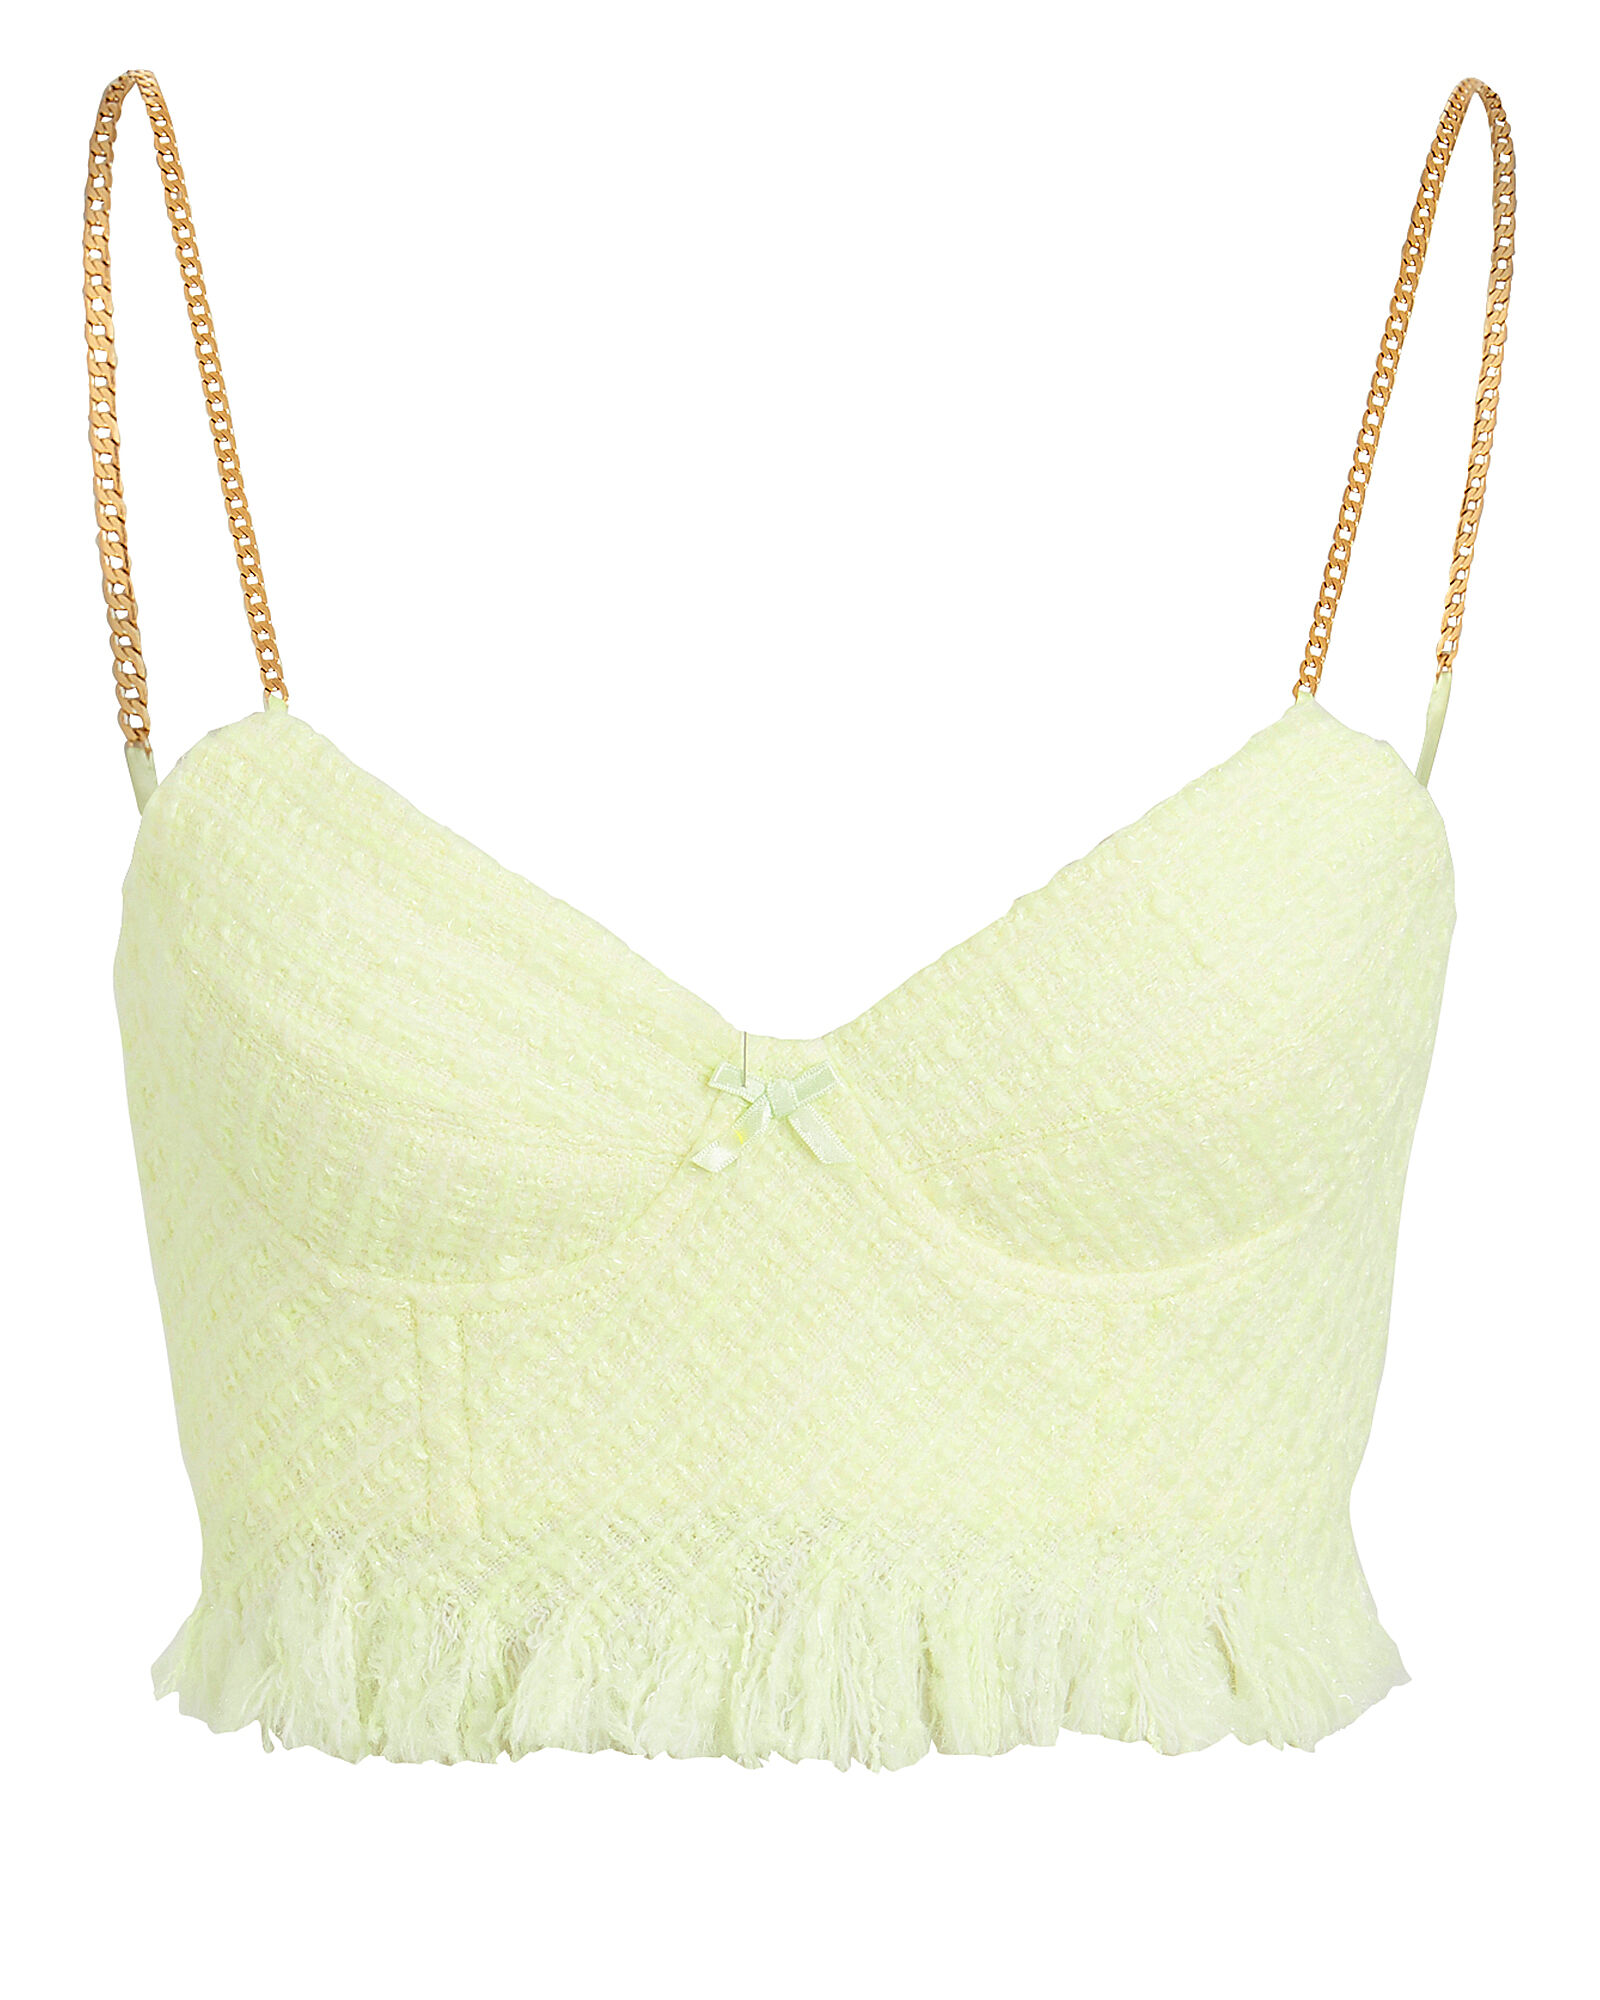 Frayed Tweed Bandeau Top, NEON YELLOW, hi-res